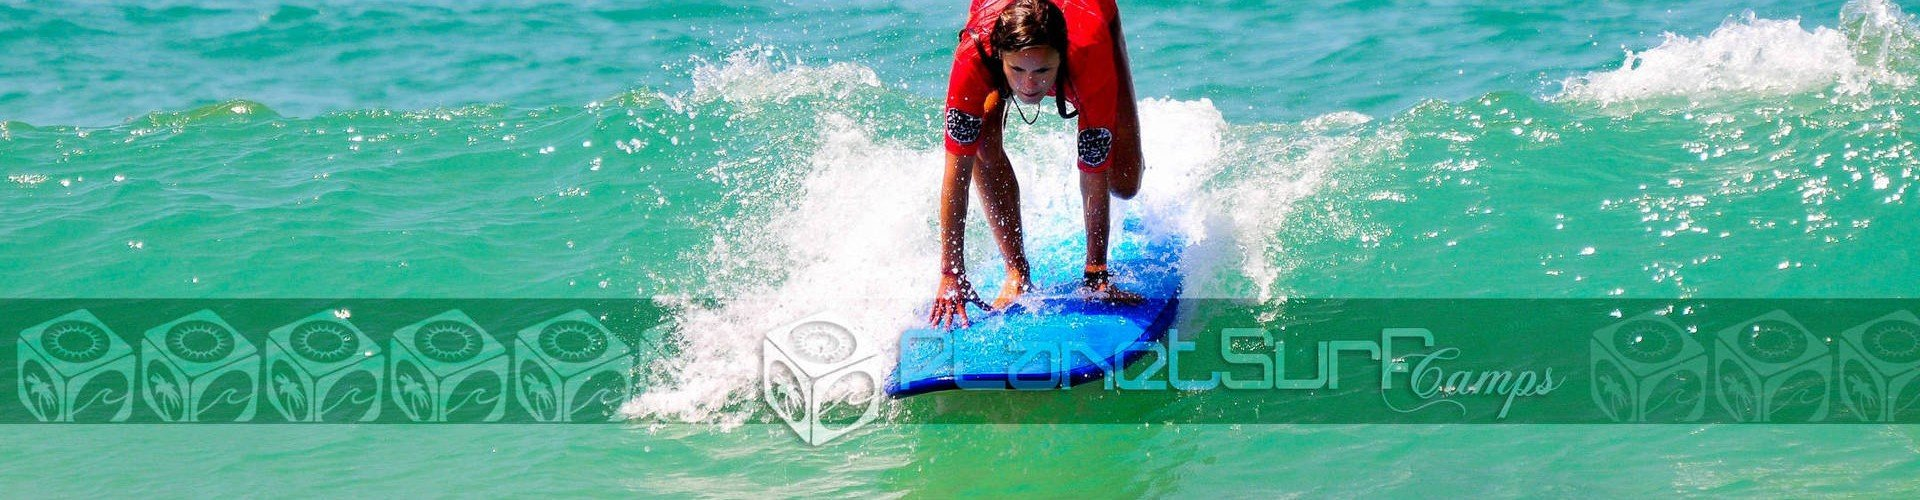 surfing with amazing weather in France